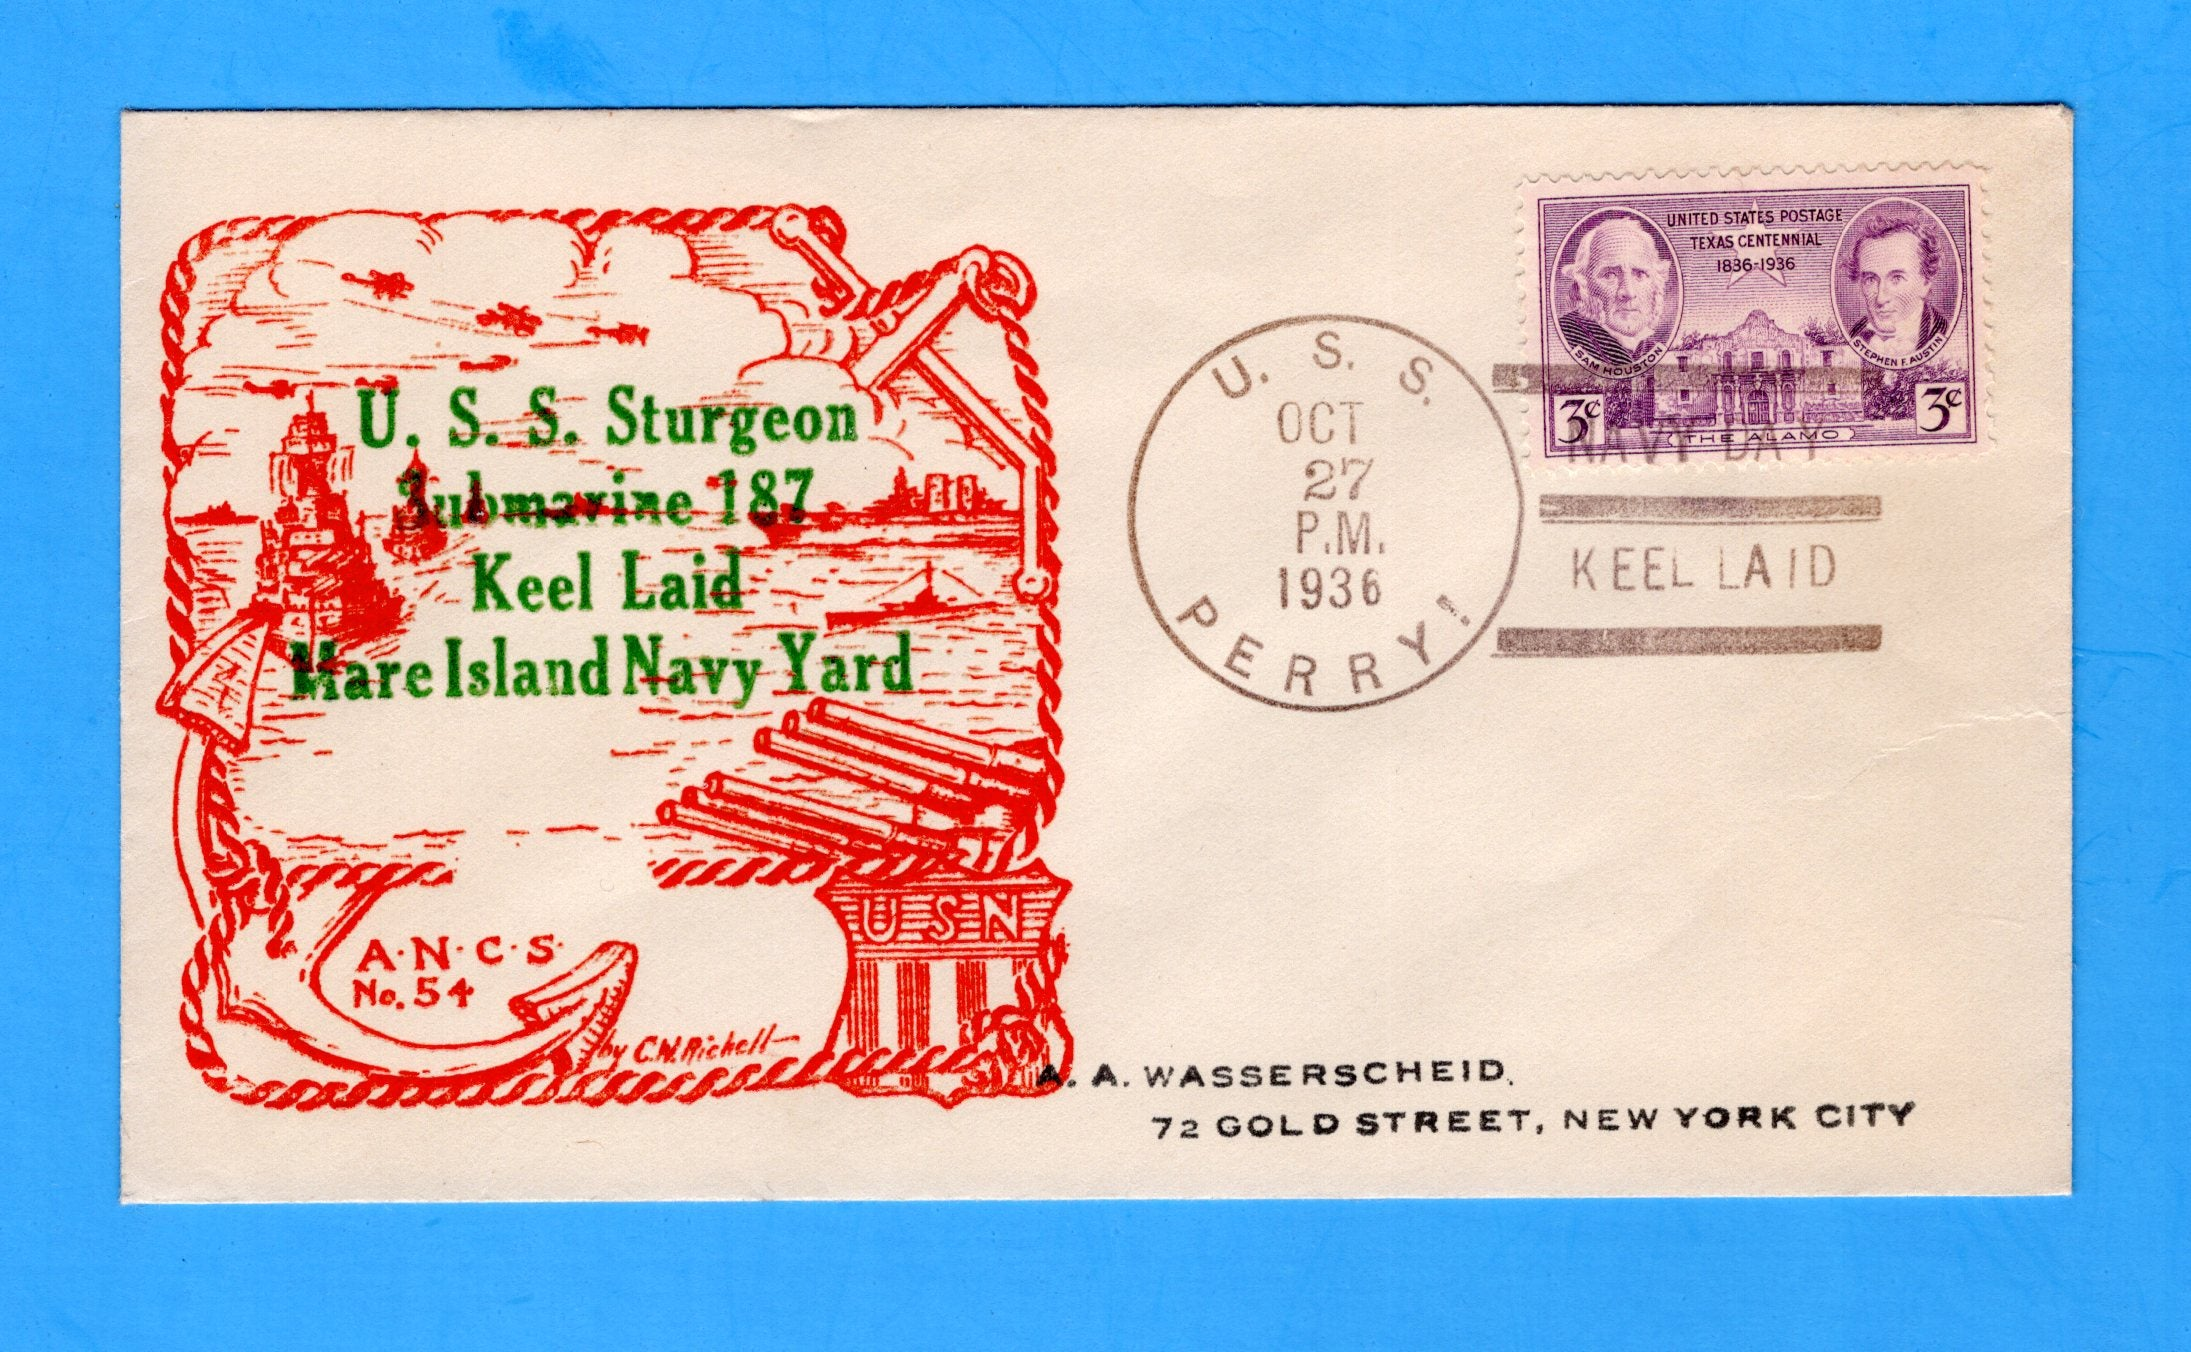 USS Sturgeon SS-187 Keel Laid October 27, 1936 - Raised Print Cachet - Cancelled USS Perry